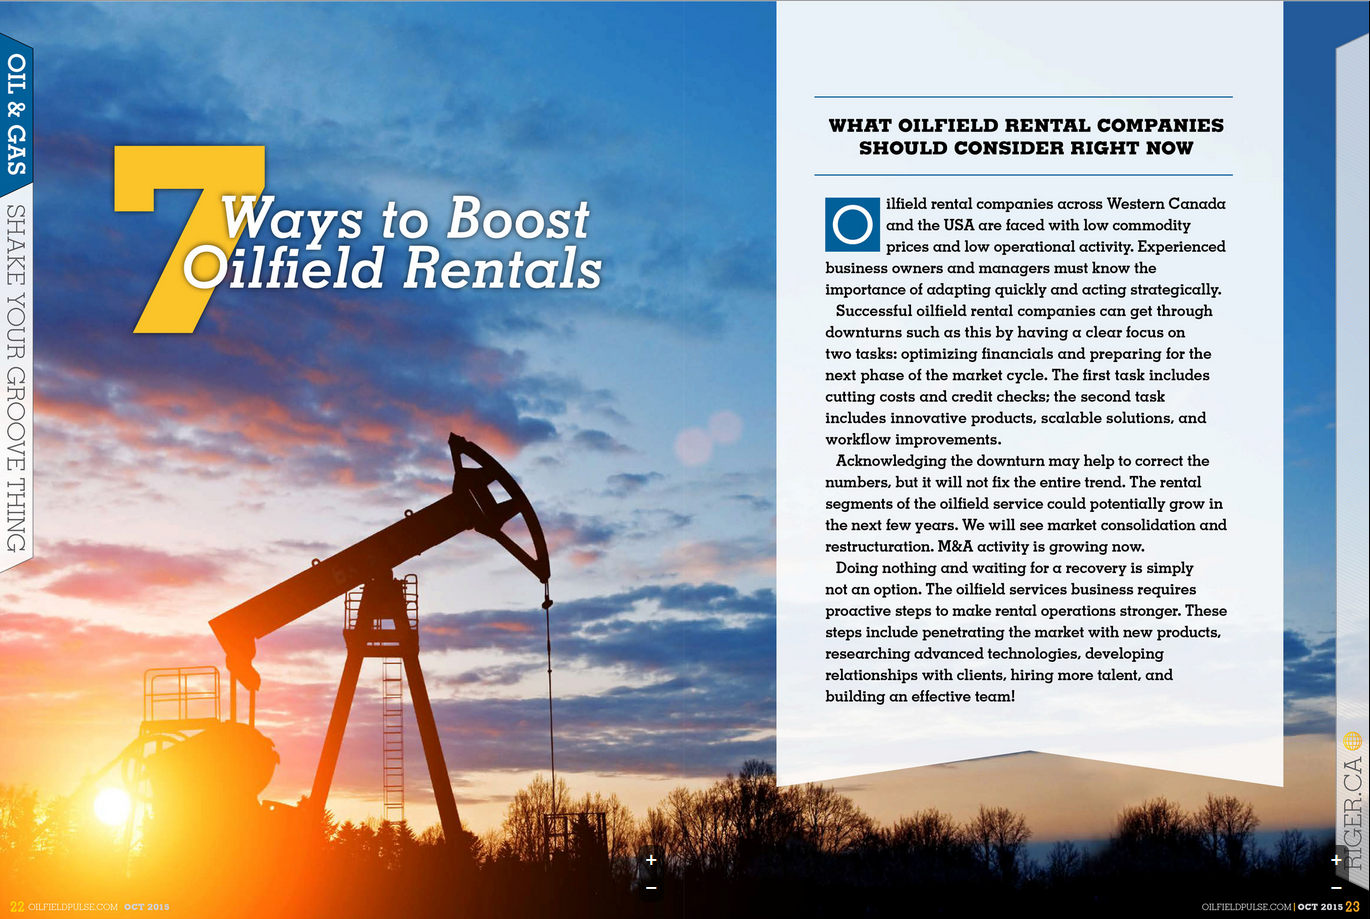 What Oilfield Rental Companies Should Consider Now